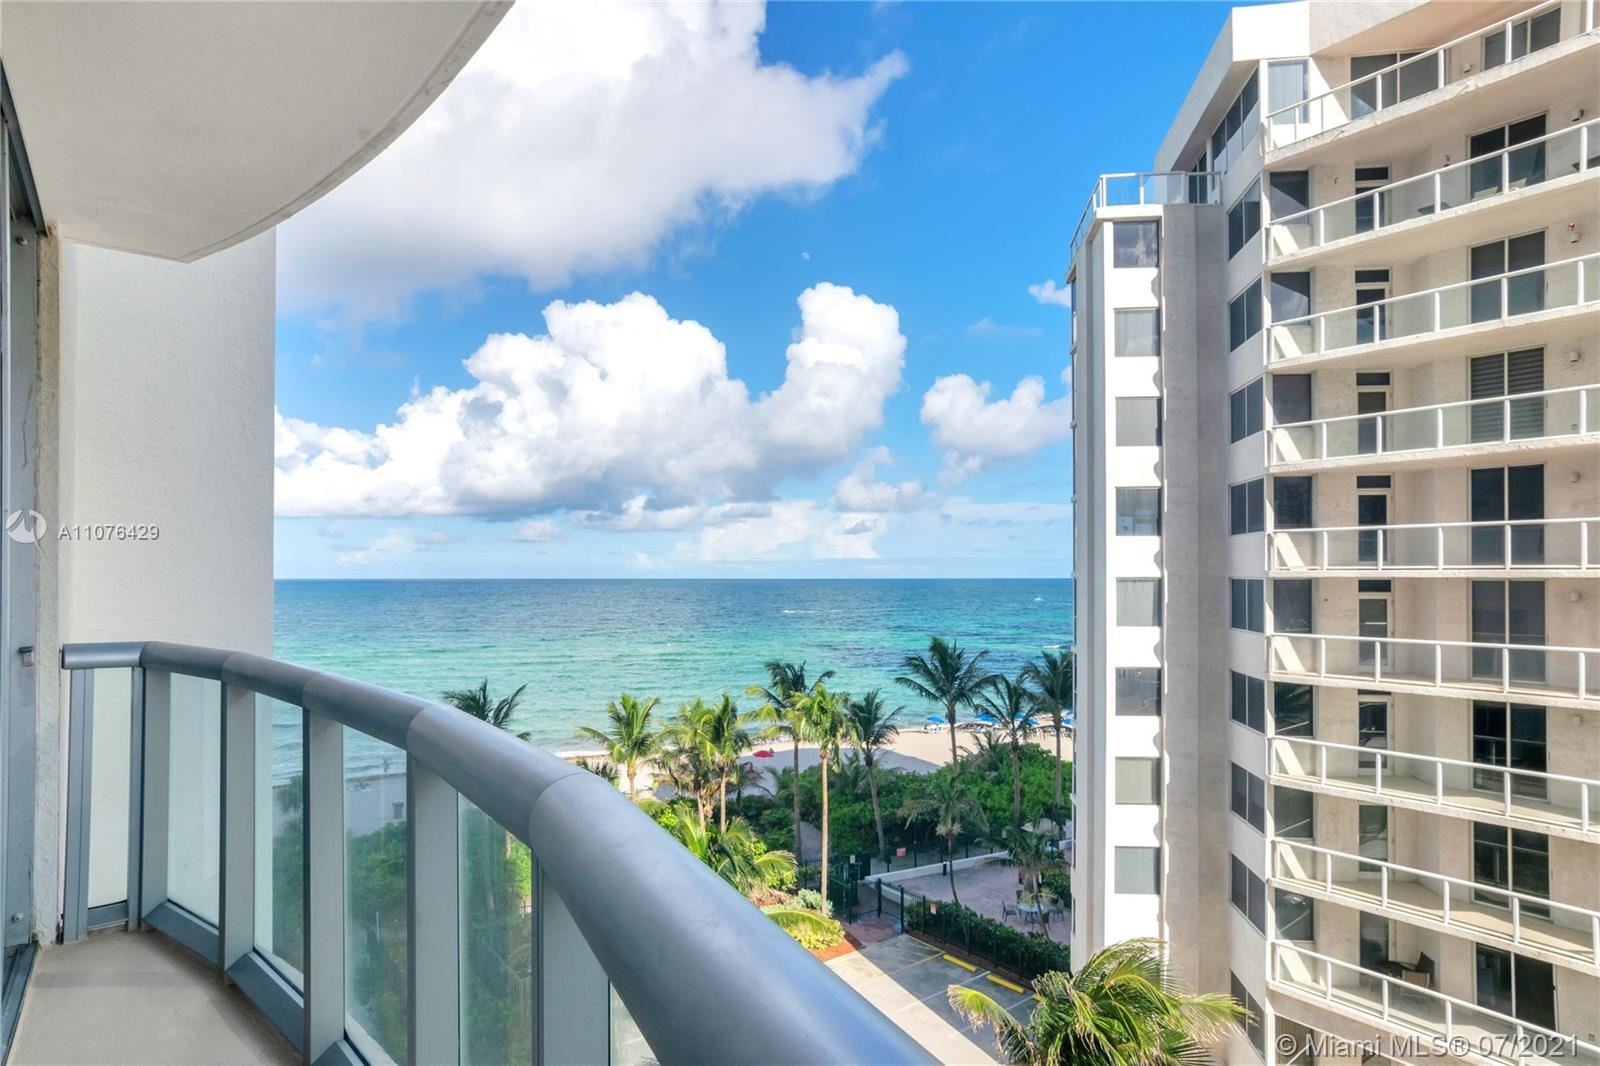 17315 Collins Ave #603, Sunny Isles, FL 33160 - #: A11076429